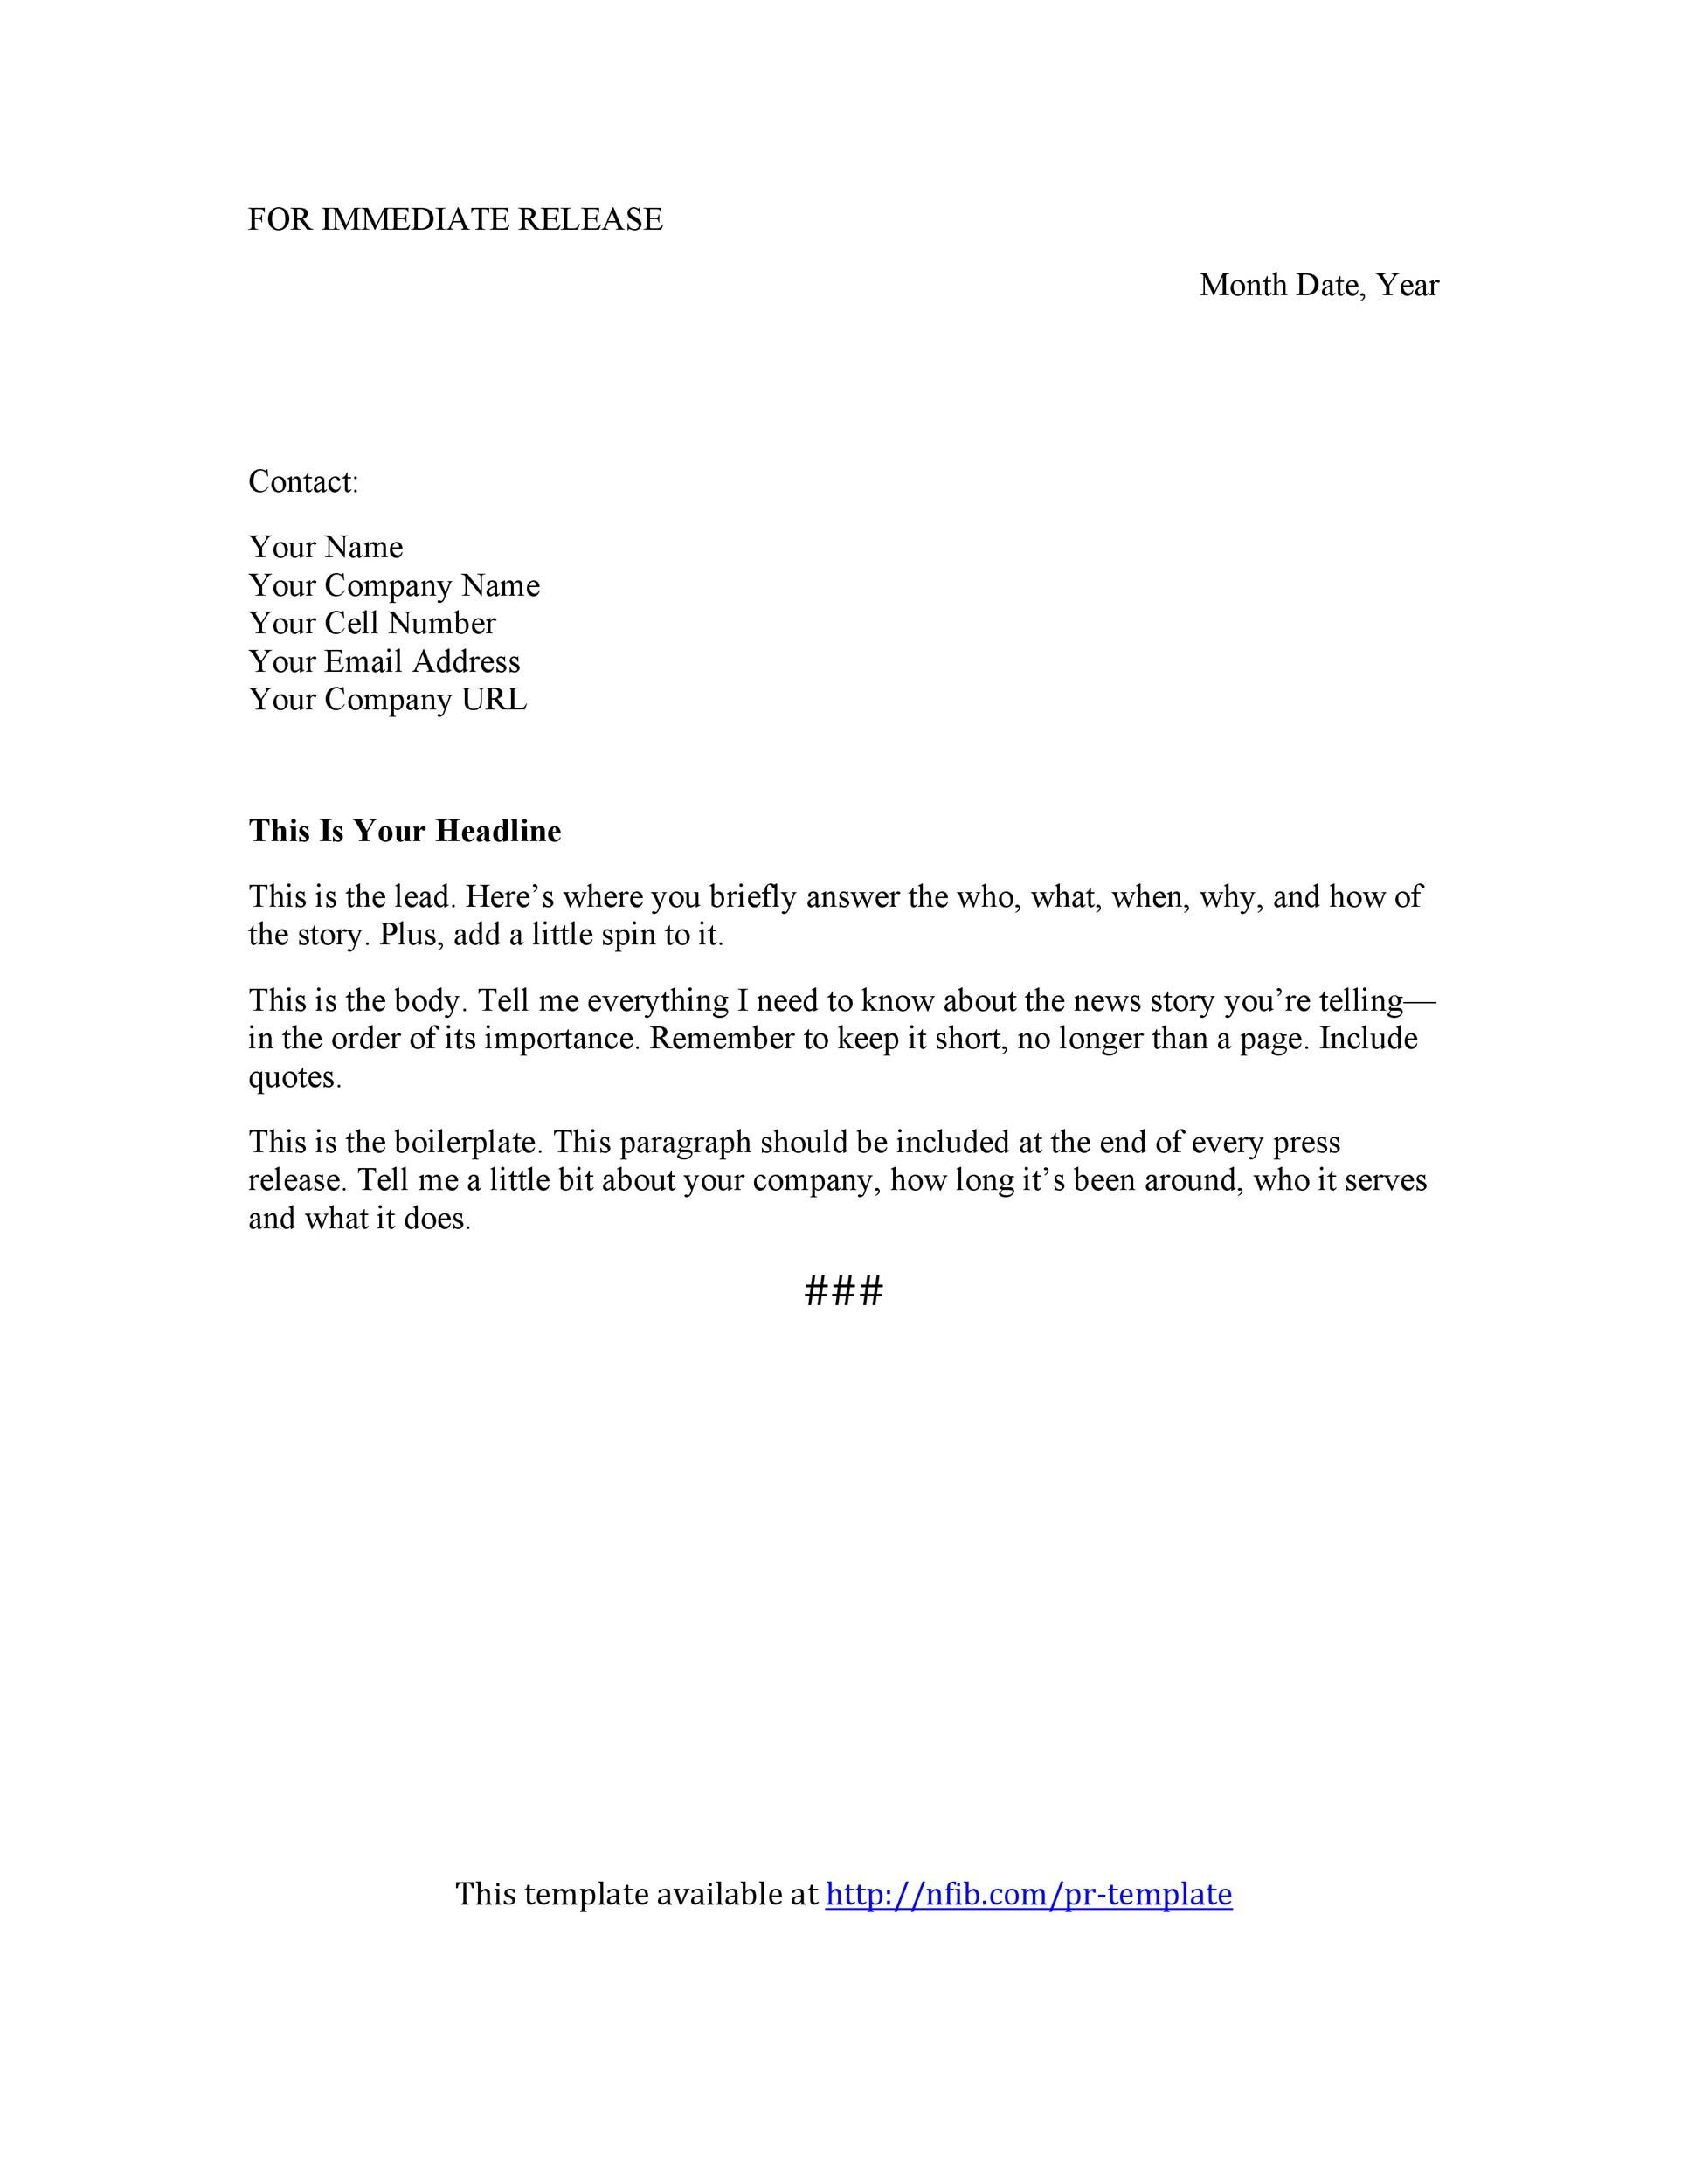 Free Press release template 38